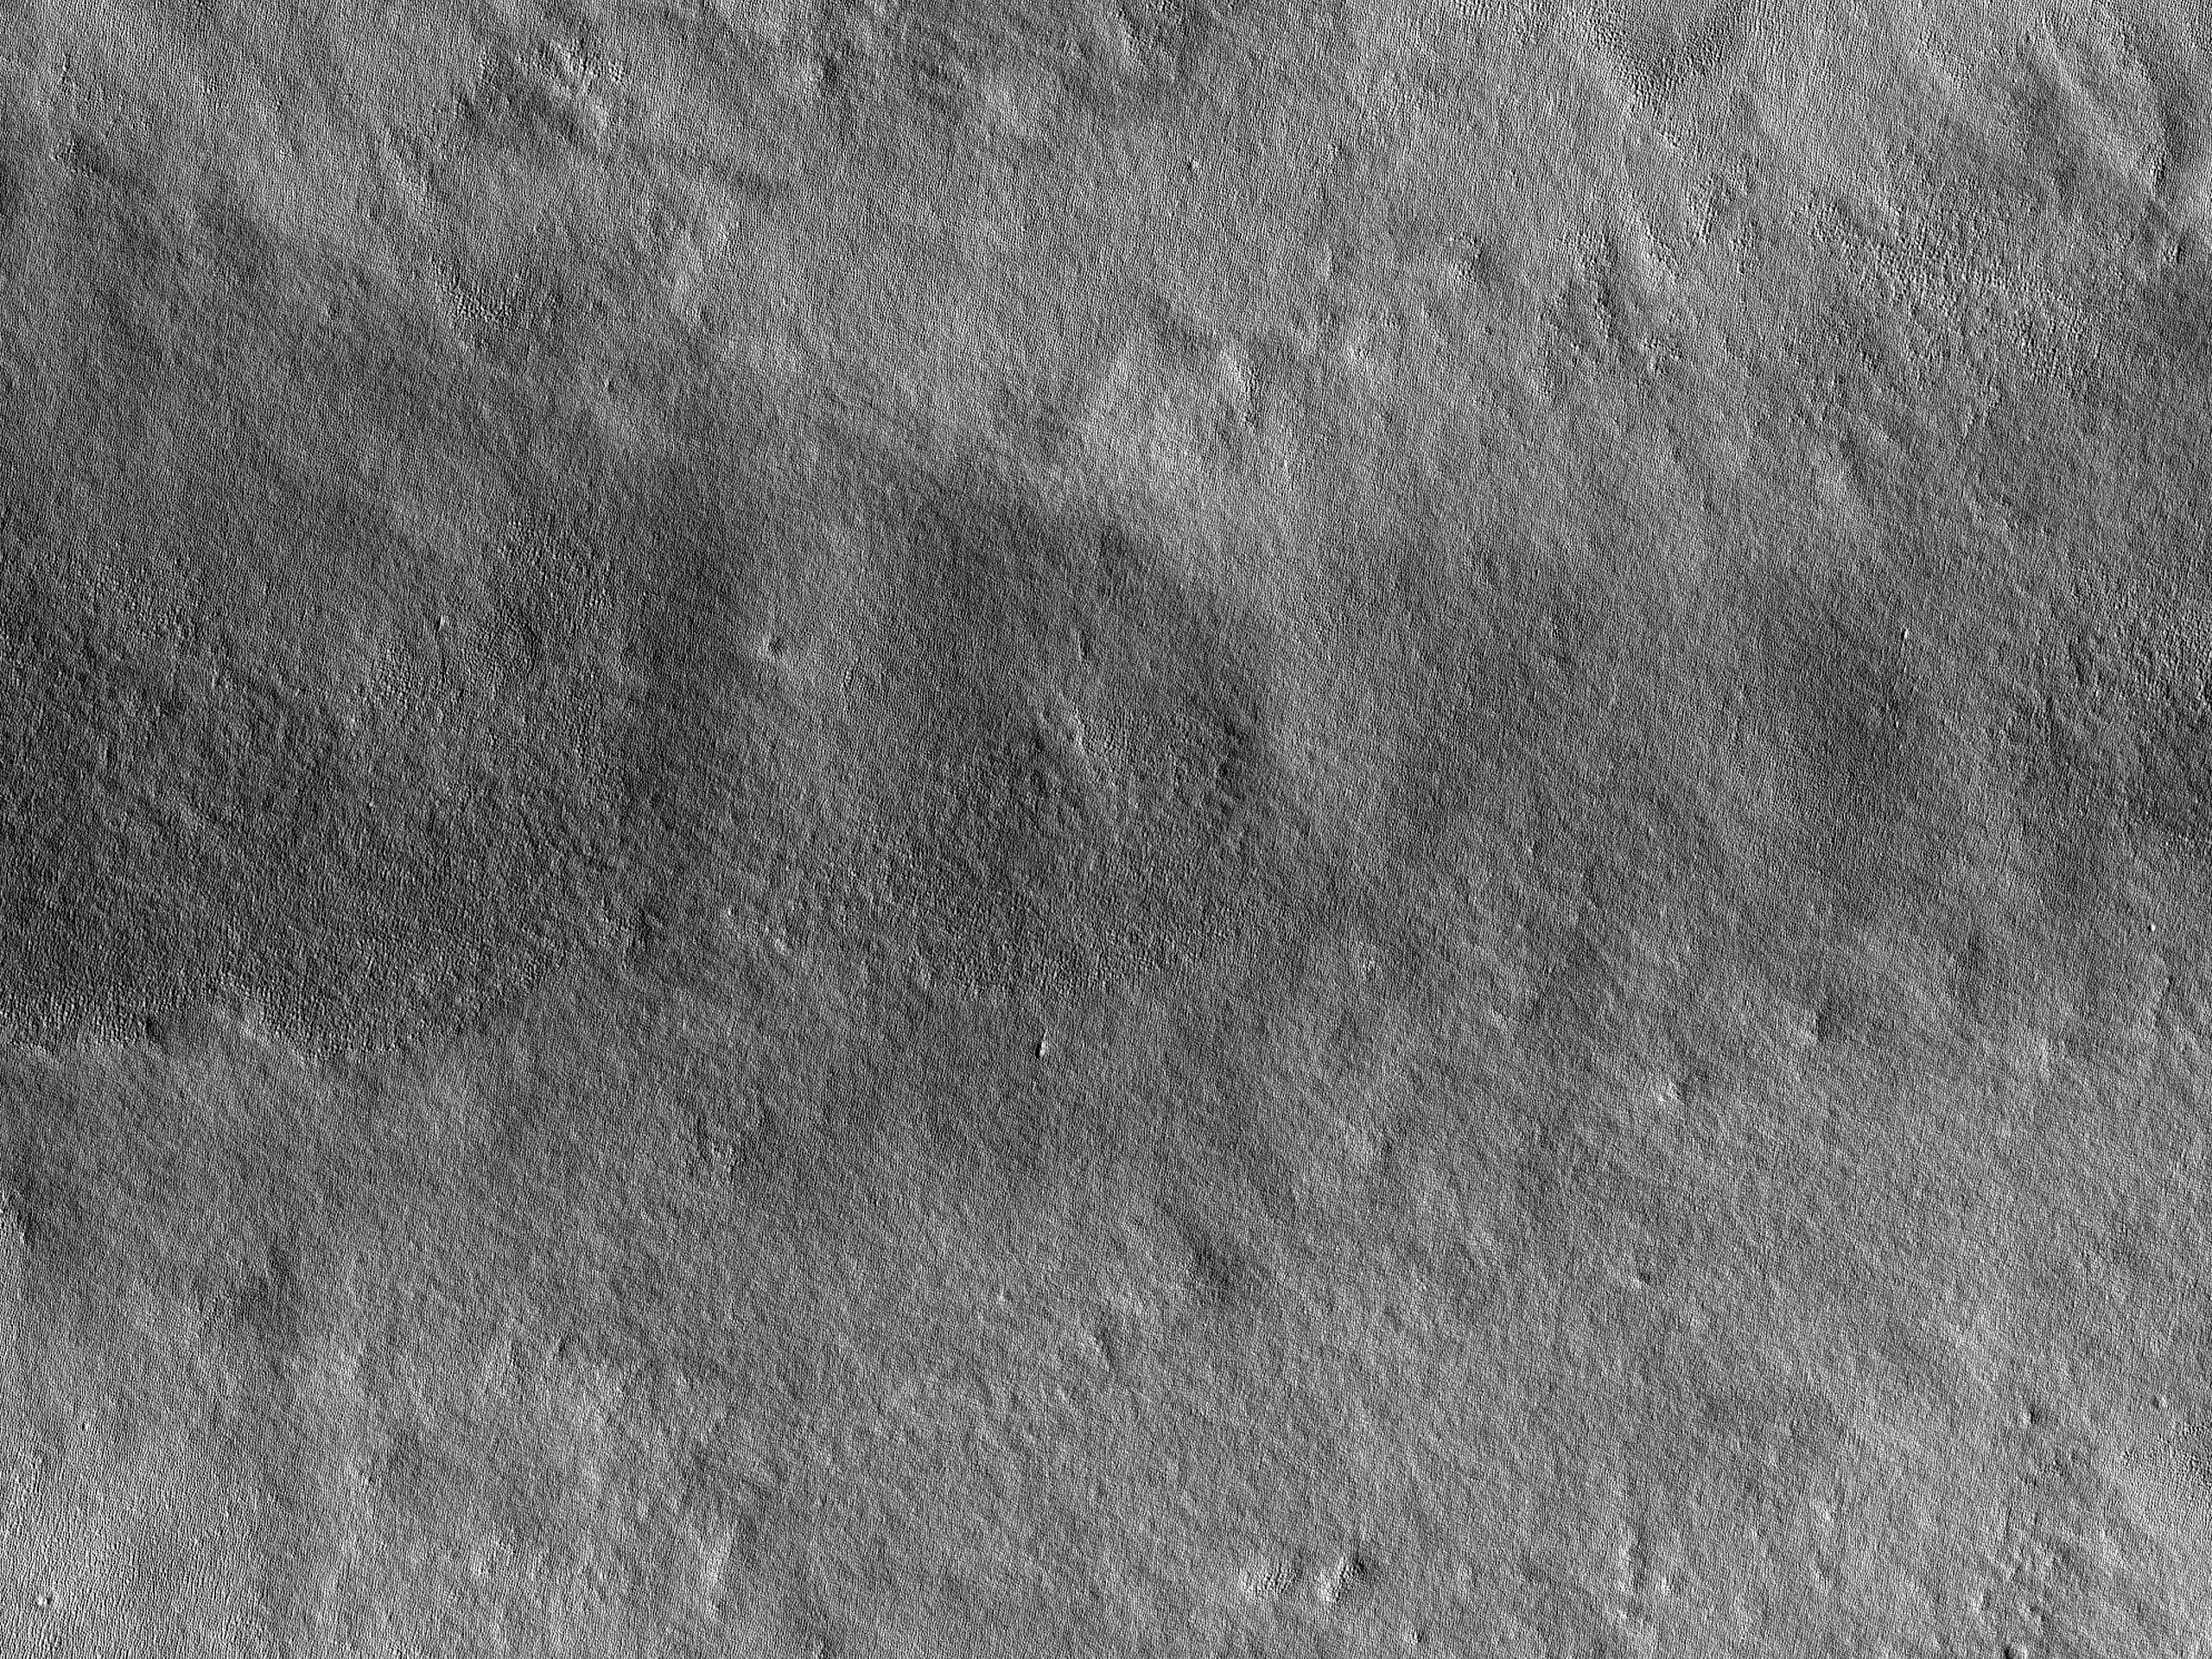 Thin Channel in Northern Arcadia Planitia